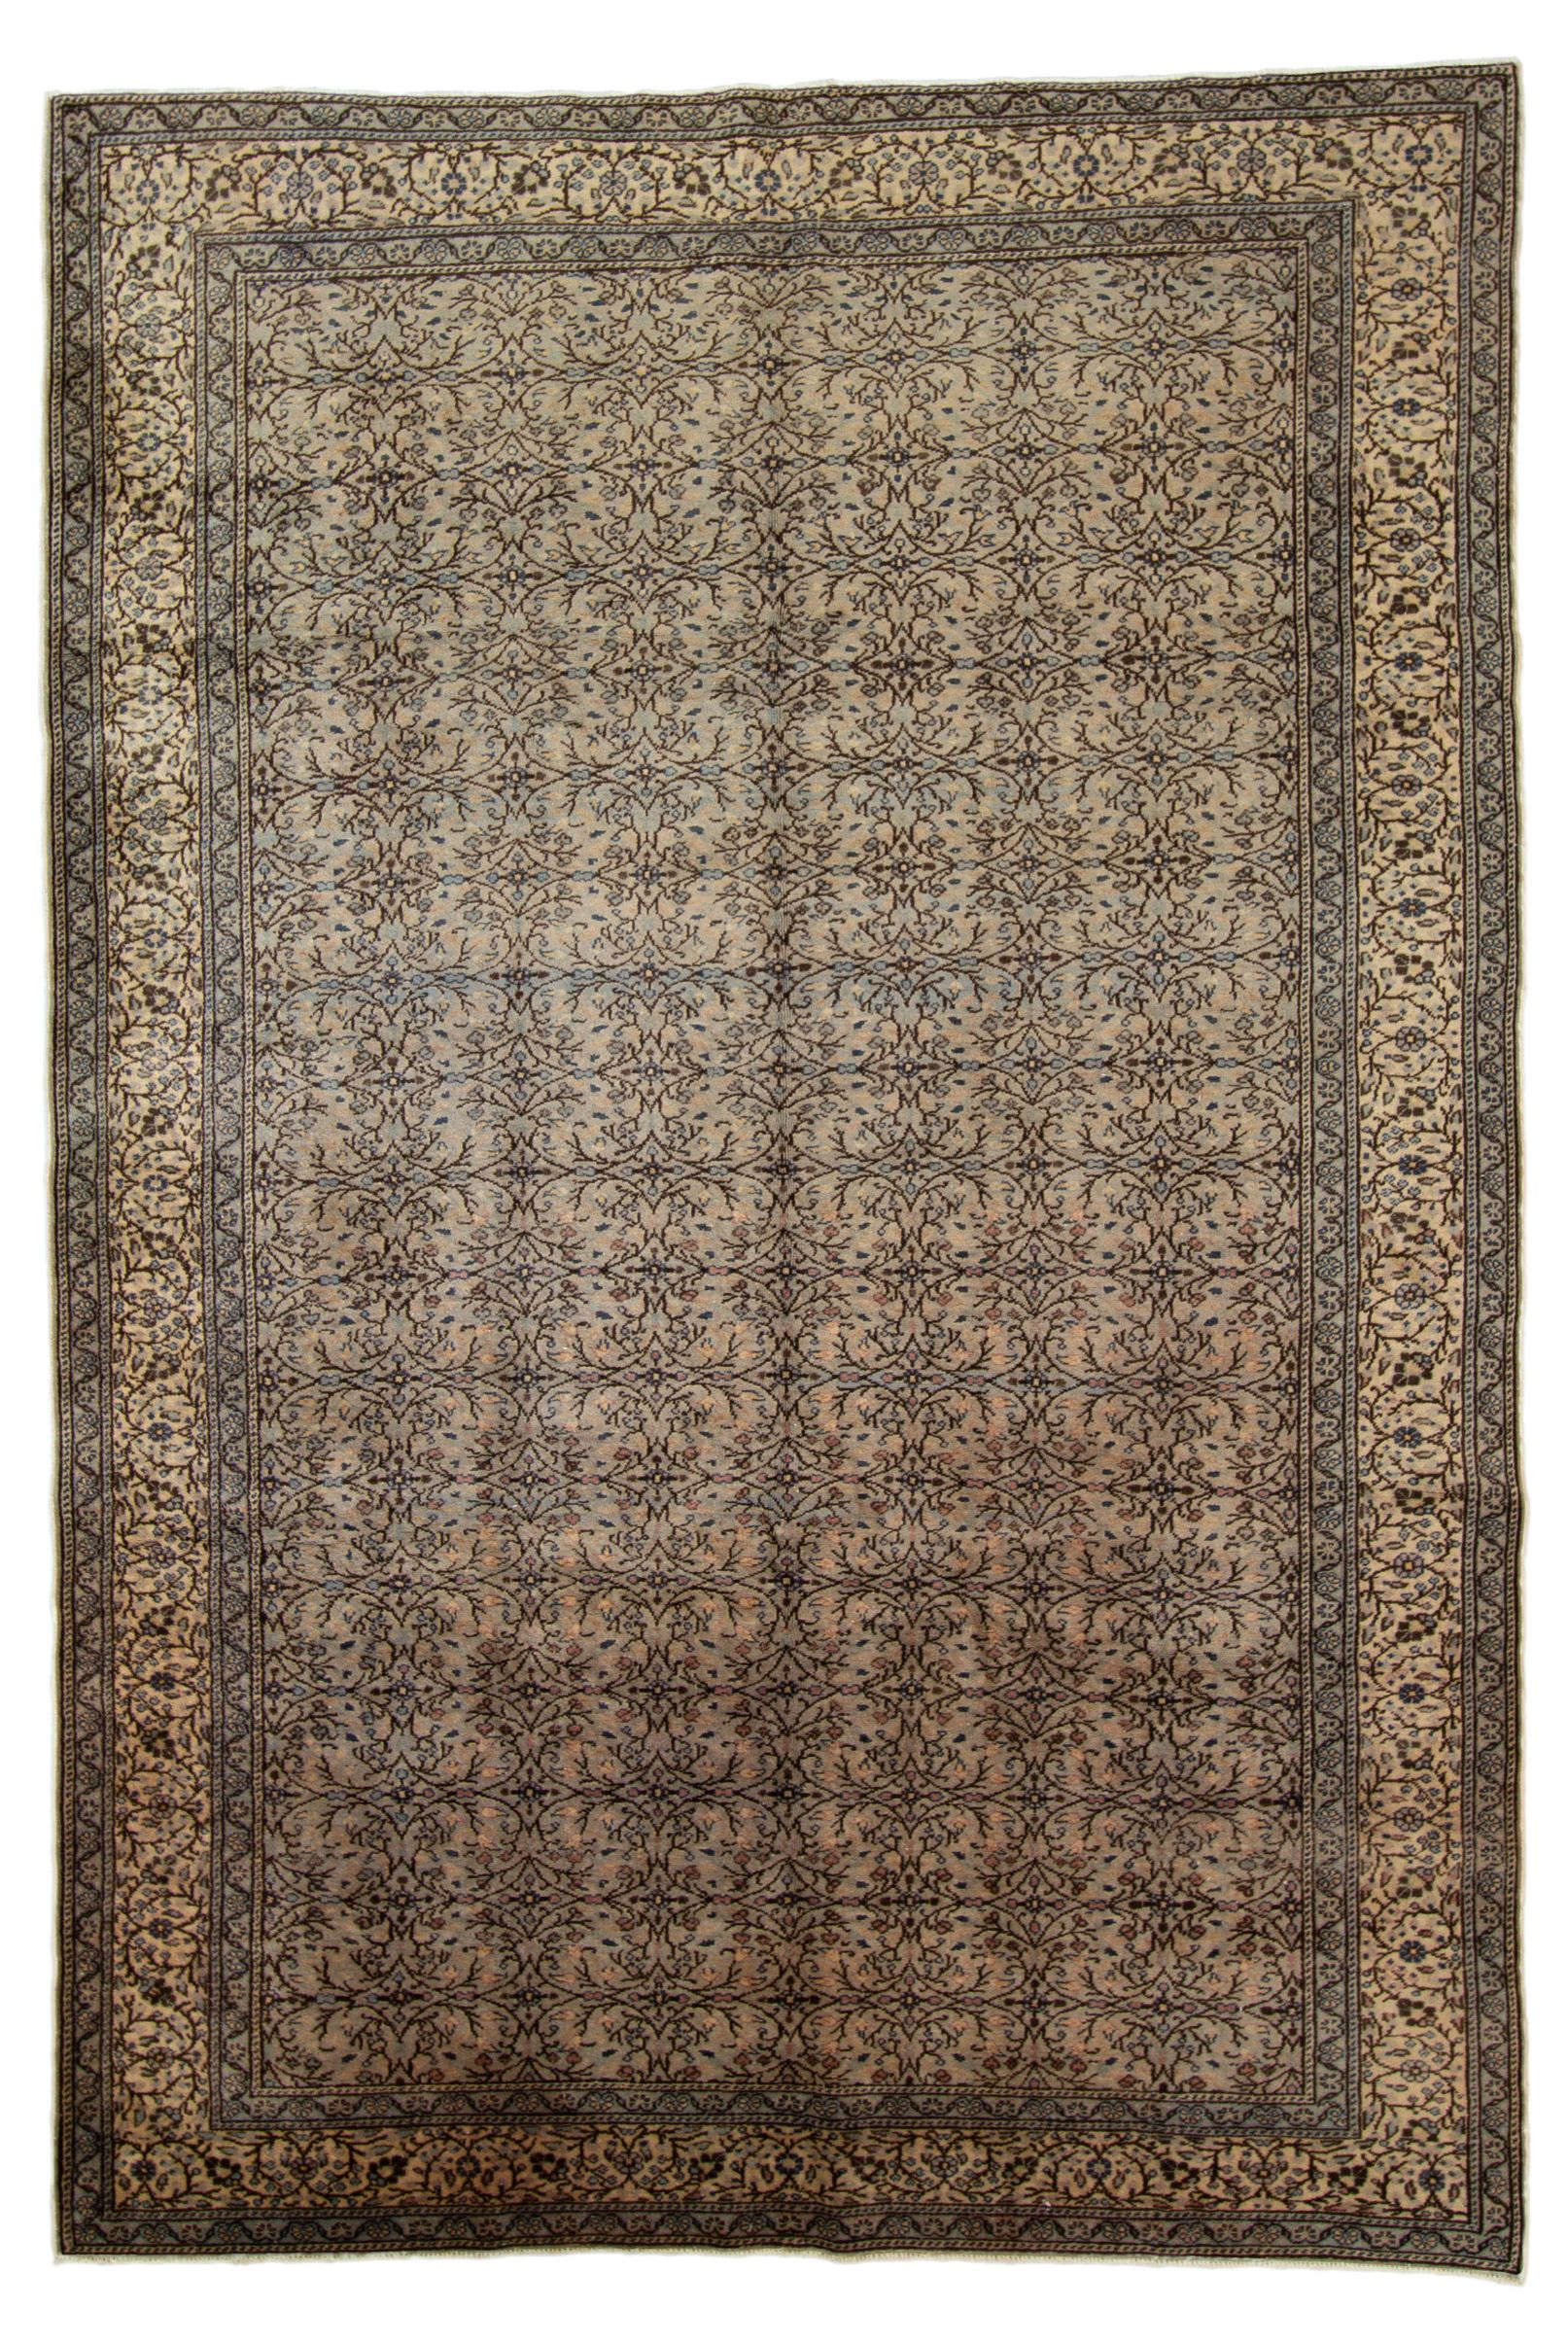 """Hand-knotted Keisari Vintage Blue, Ivory  Rug 6'5"""" x 9'5"""" Size: 6'5"""" x 9'5"""""""